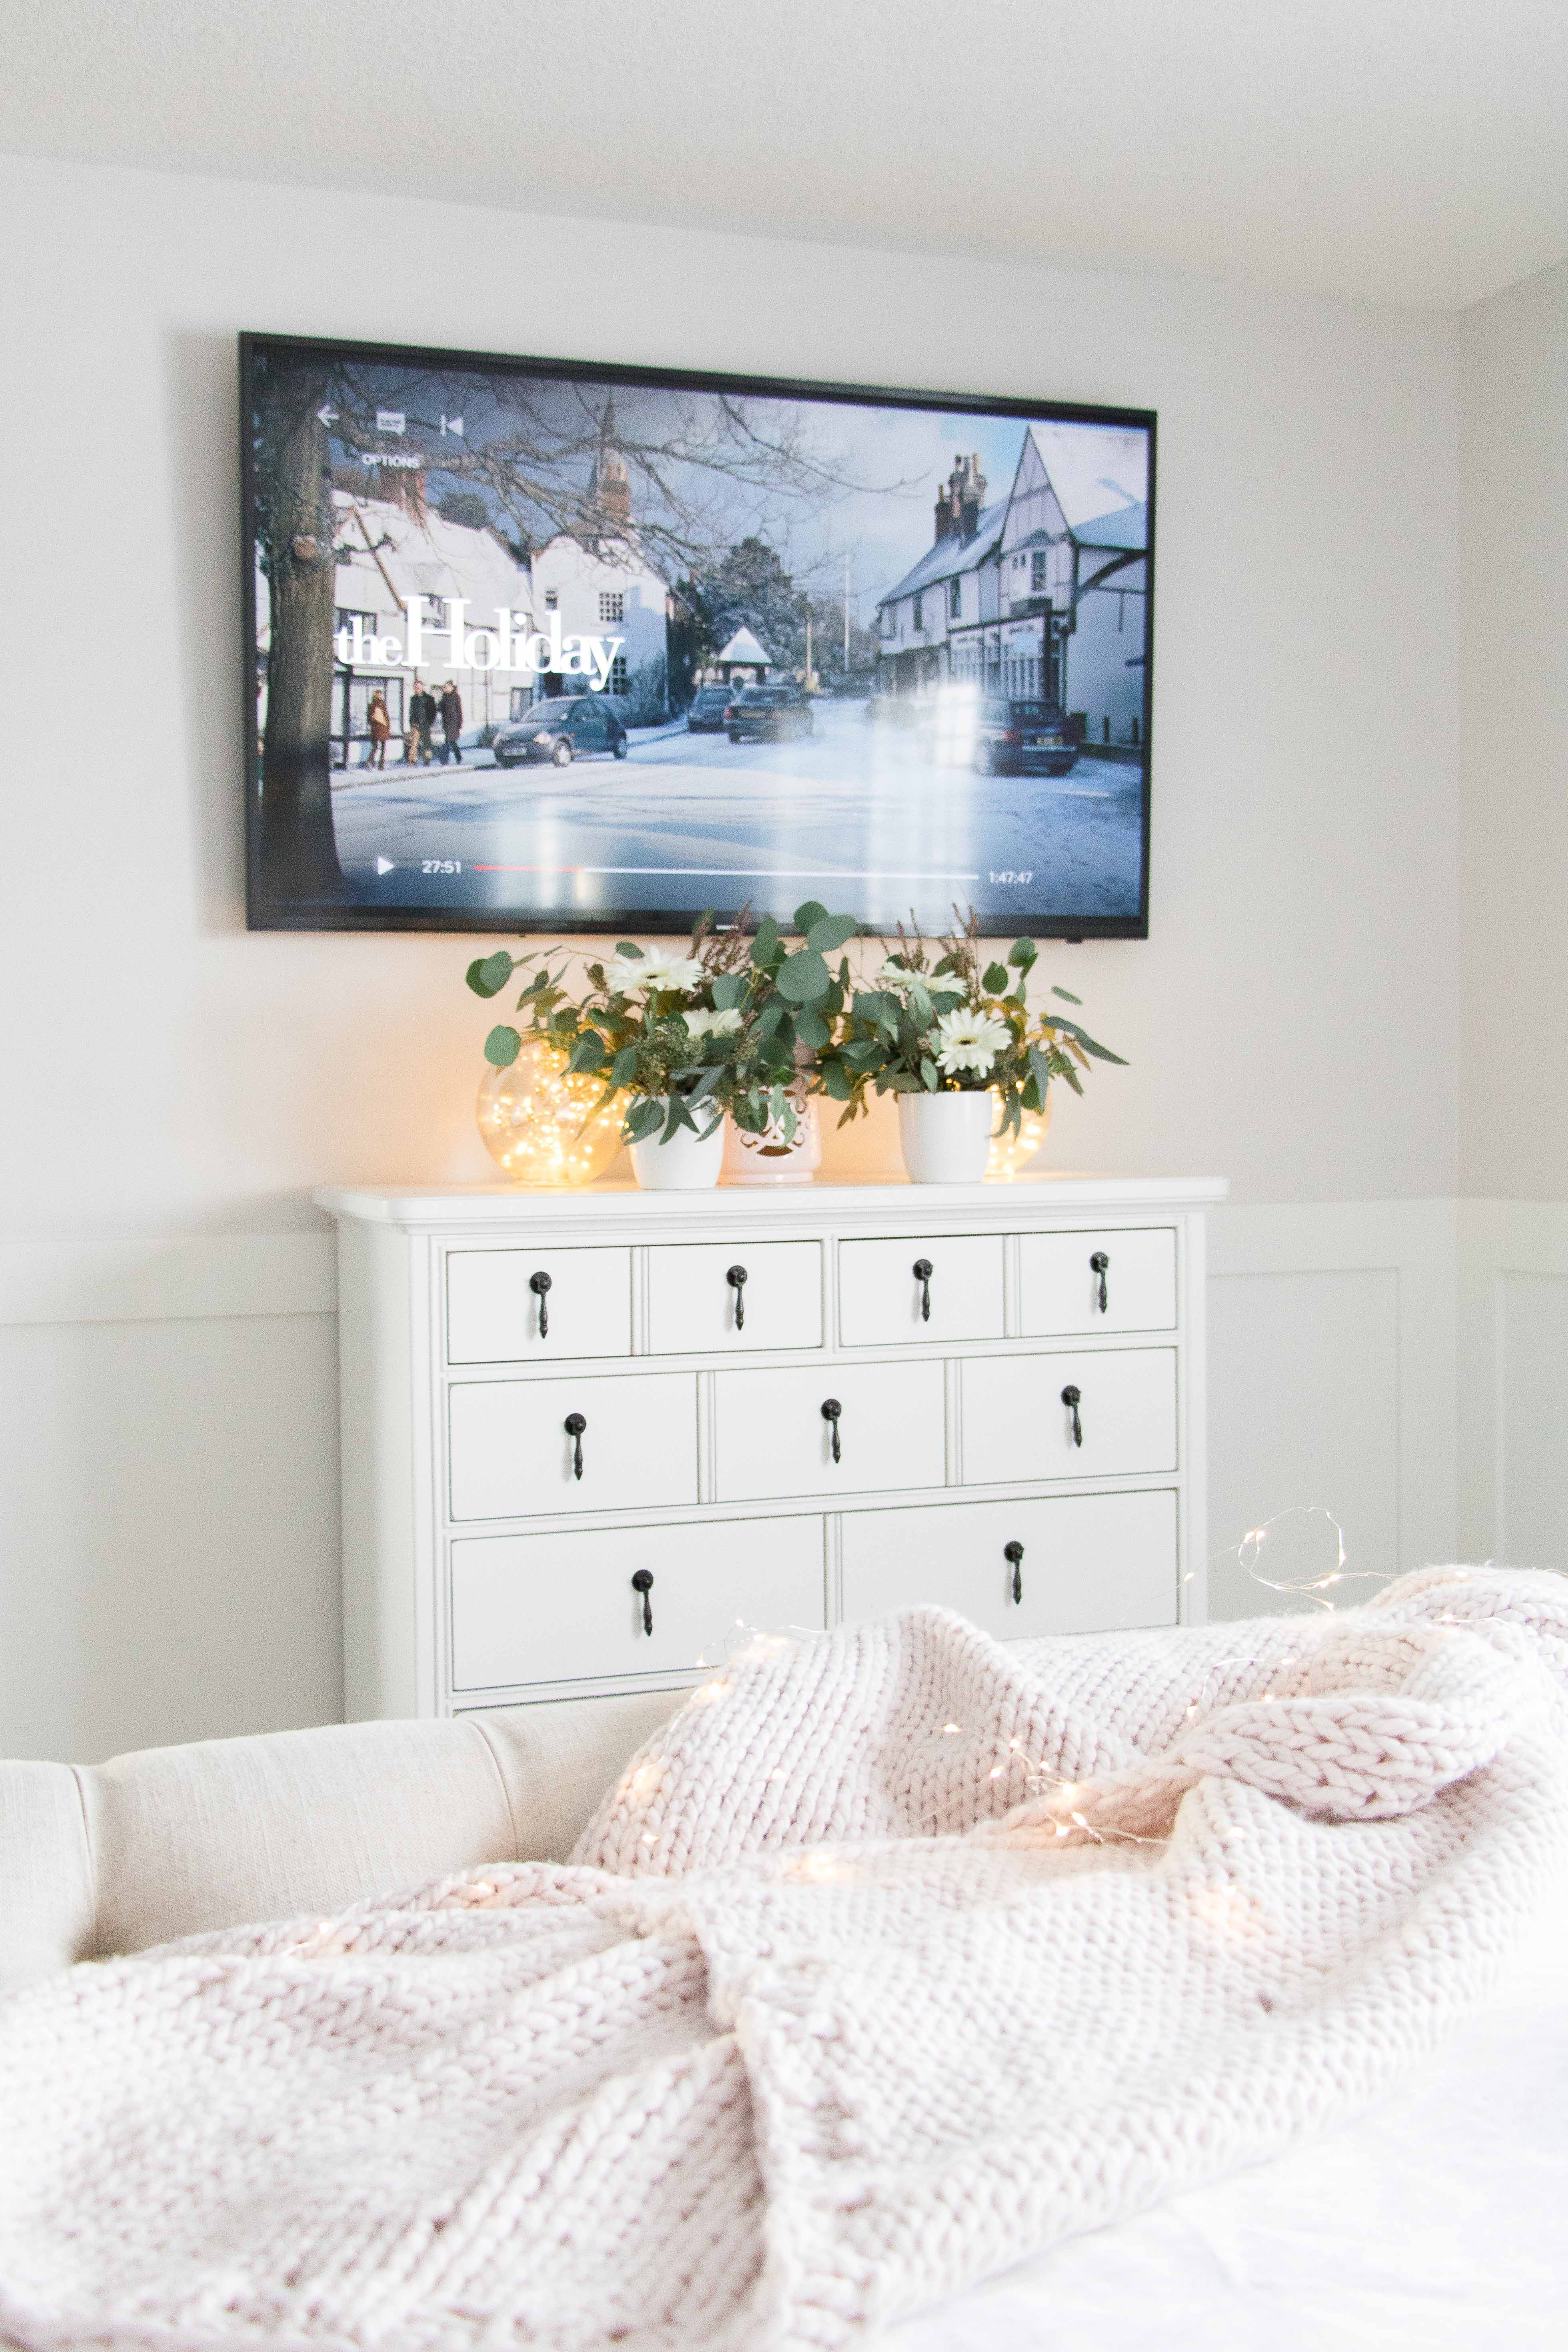 White bedroom dresser with TV above it